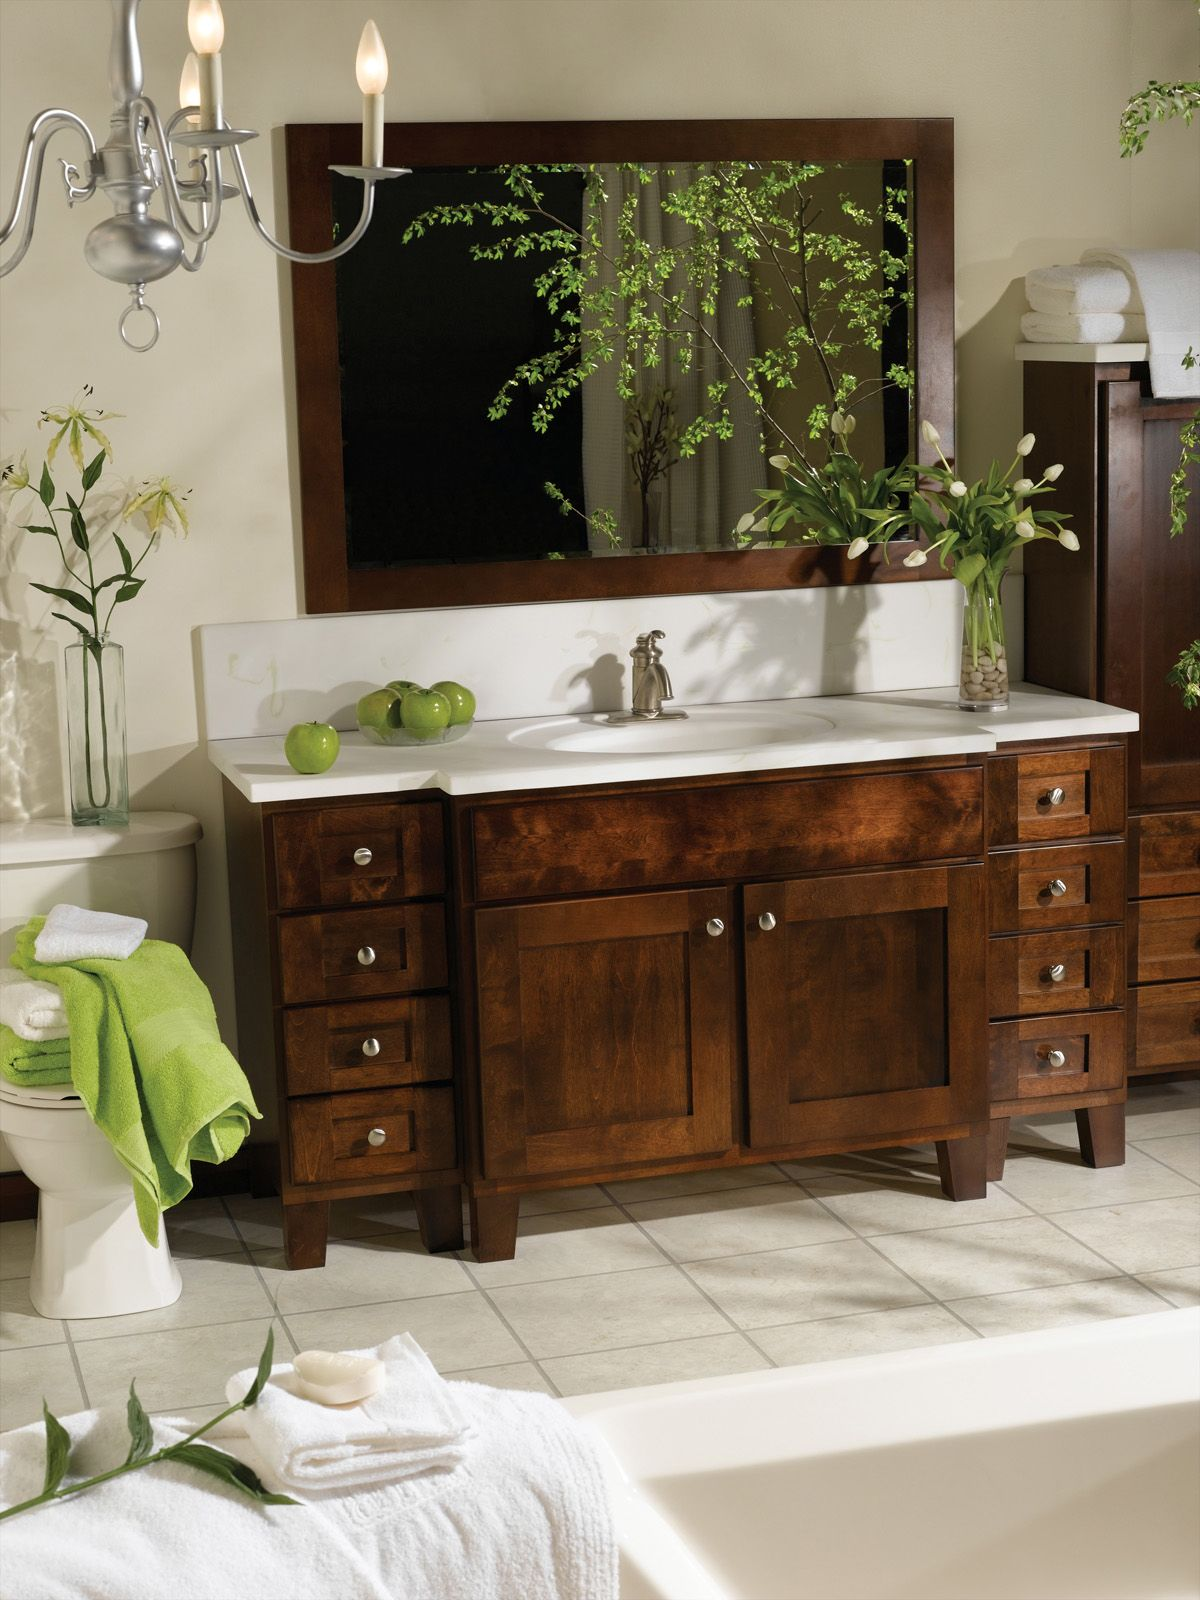 Pretty Kitchen Bath And Beyond Tampa Small Choice Bathroom Shop Uk Square Fitted Bathroom Companies Bathroom Tile Floors Patterns Old Big Bathroom Mirrors Uk ColouredBathroom Mirror Frame Kit Canada 1000  Images About Bertch Bathroom Cabinetry \u0026amp; Vanities On ..